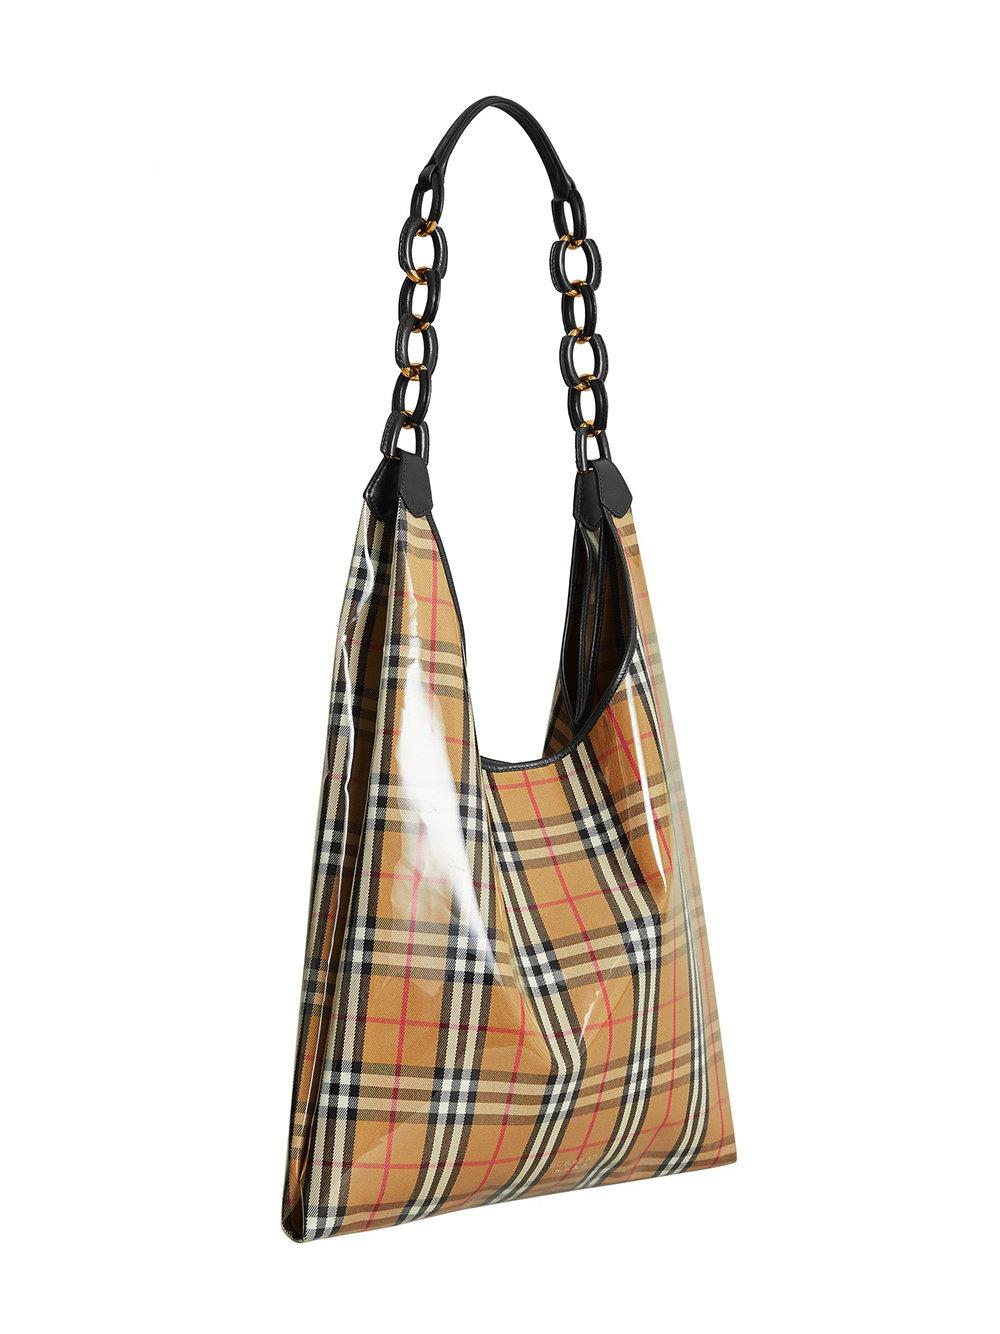 Medium plastic shopper with vintage check pouch - Nude & Neutrals Burberry gagtTkH4